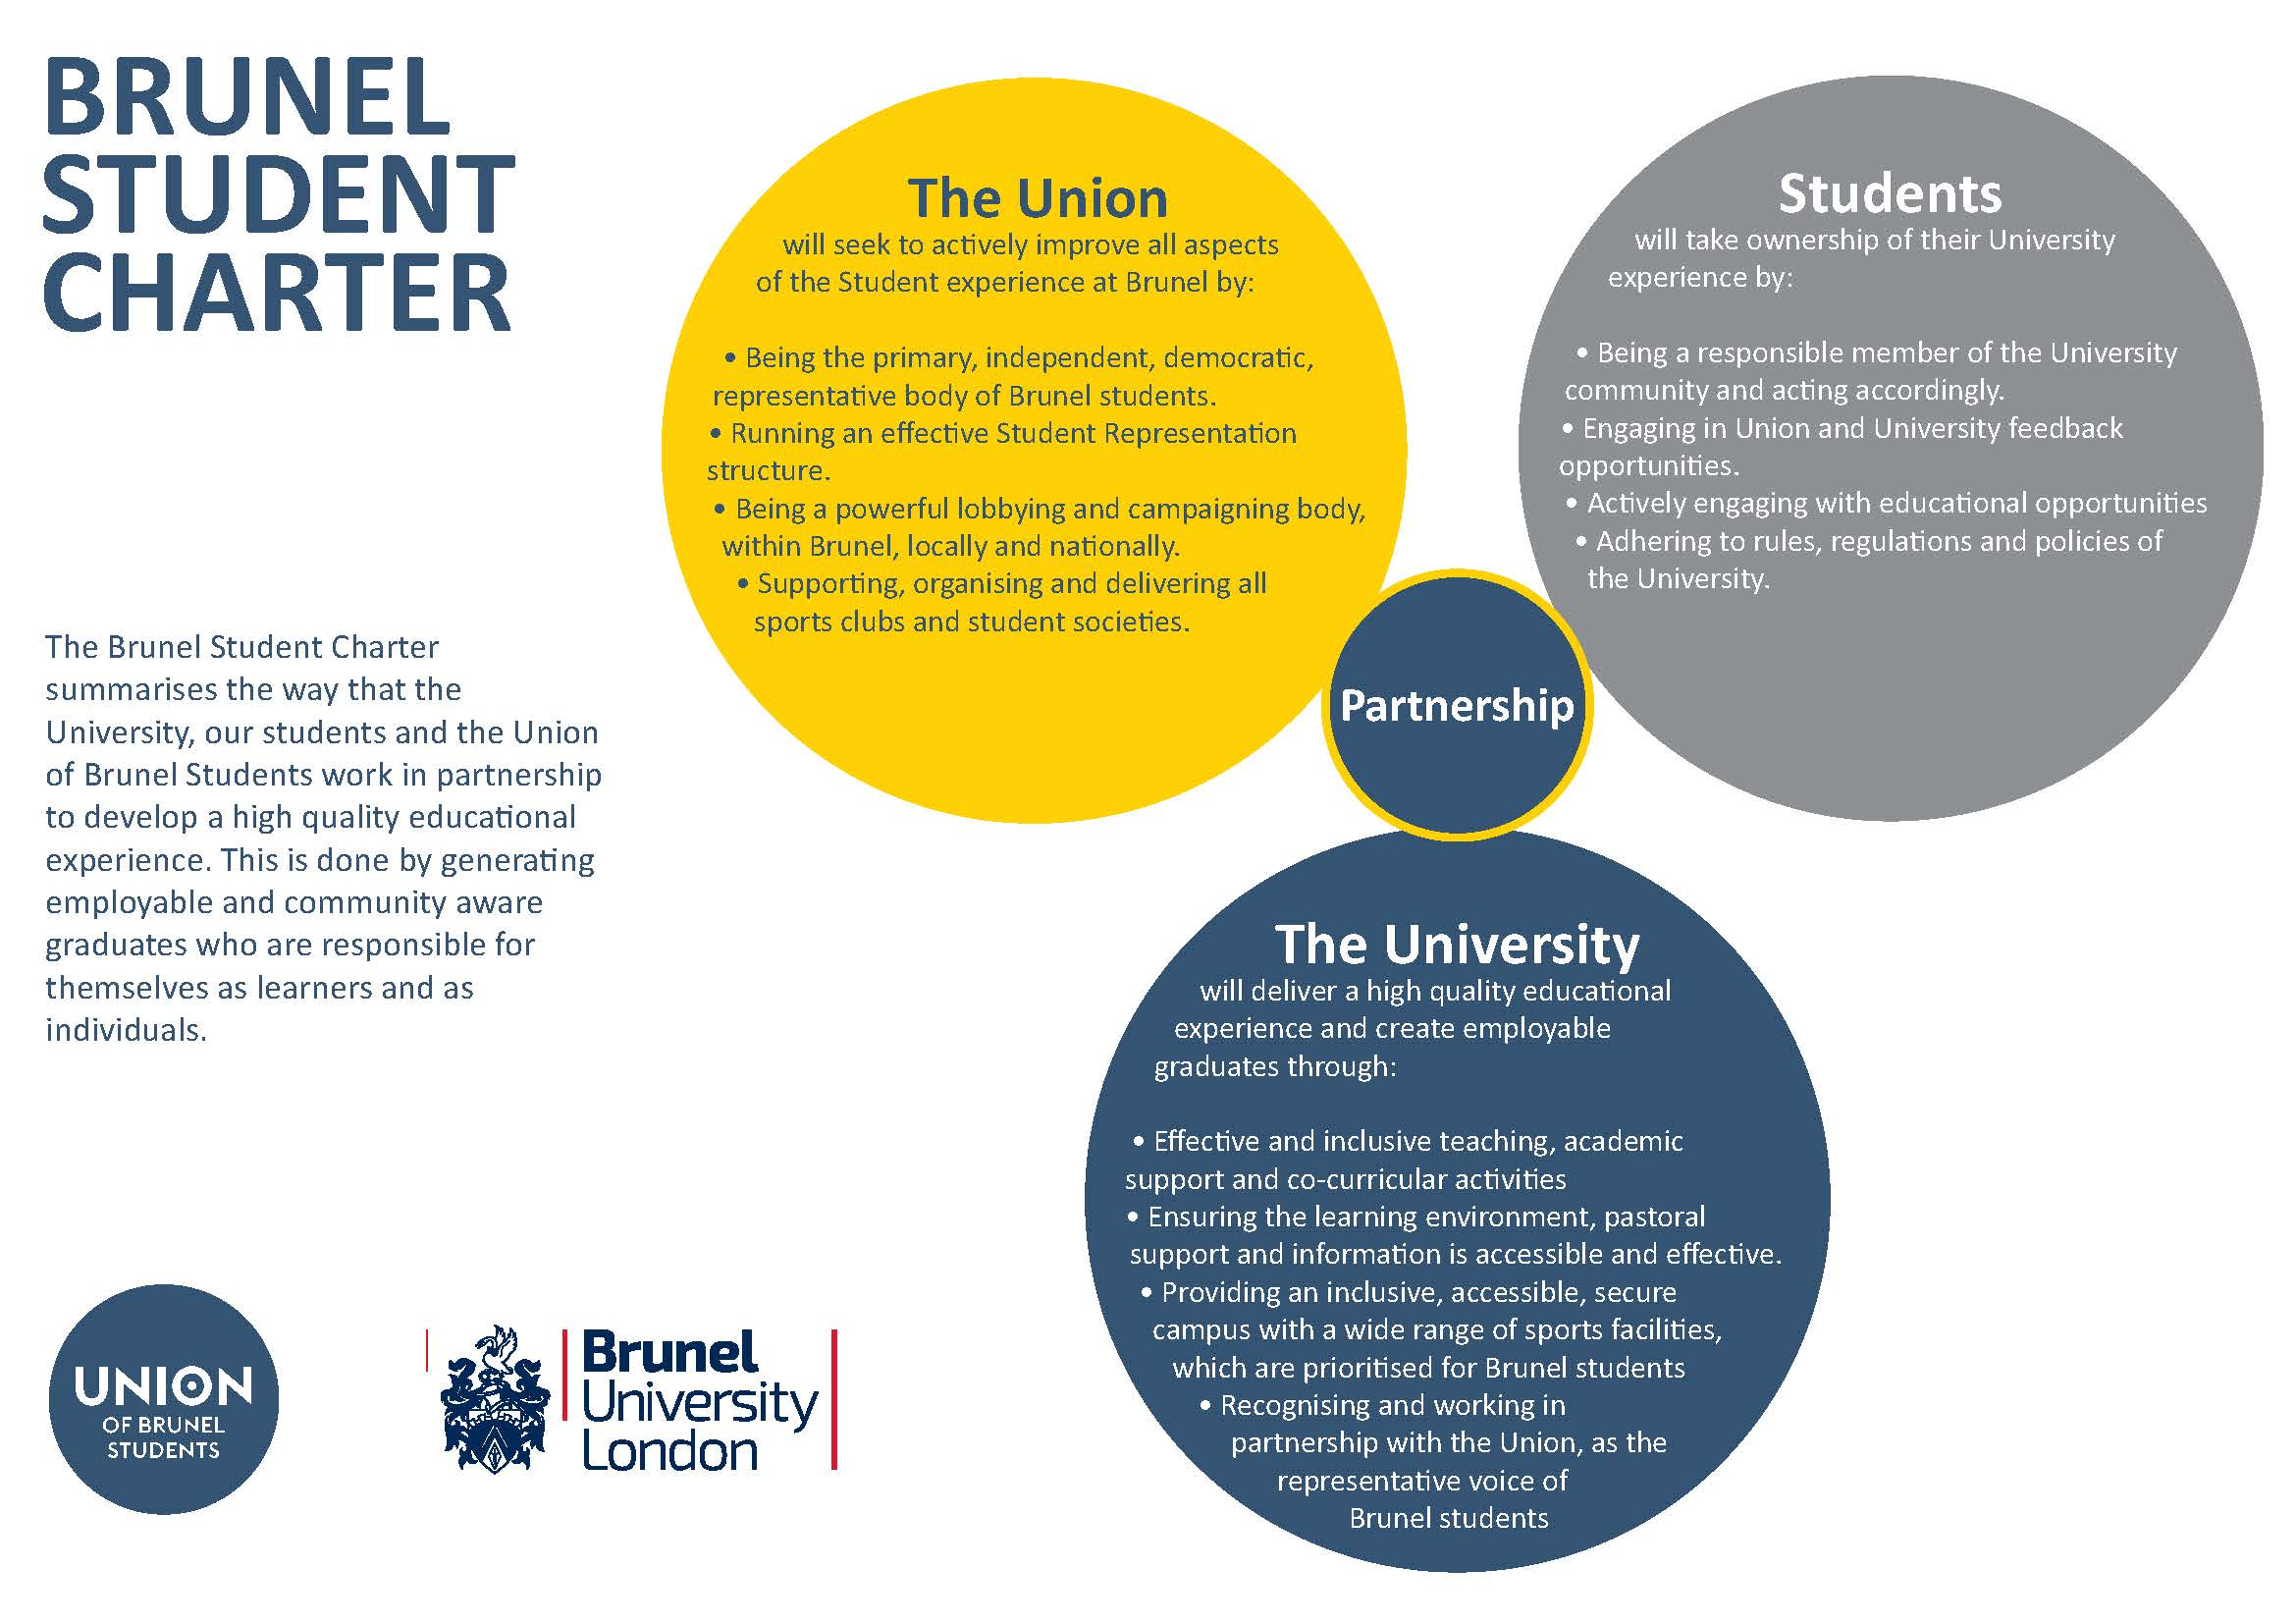 BrunelStudentCharter_2016-17_web